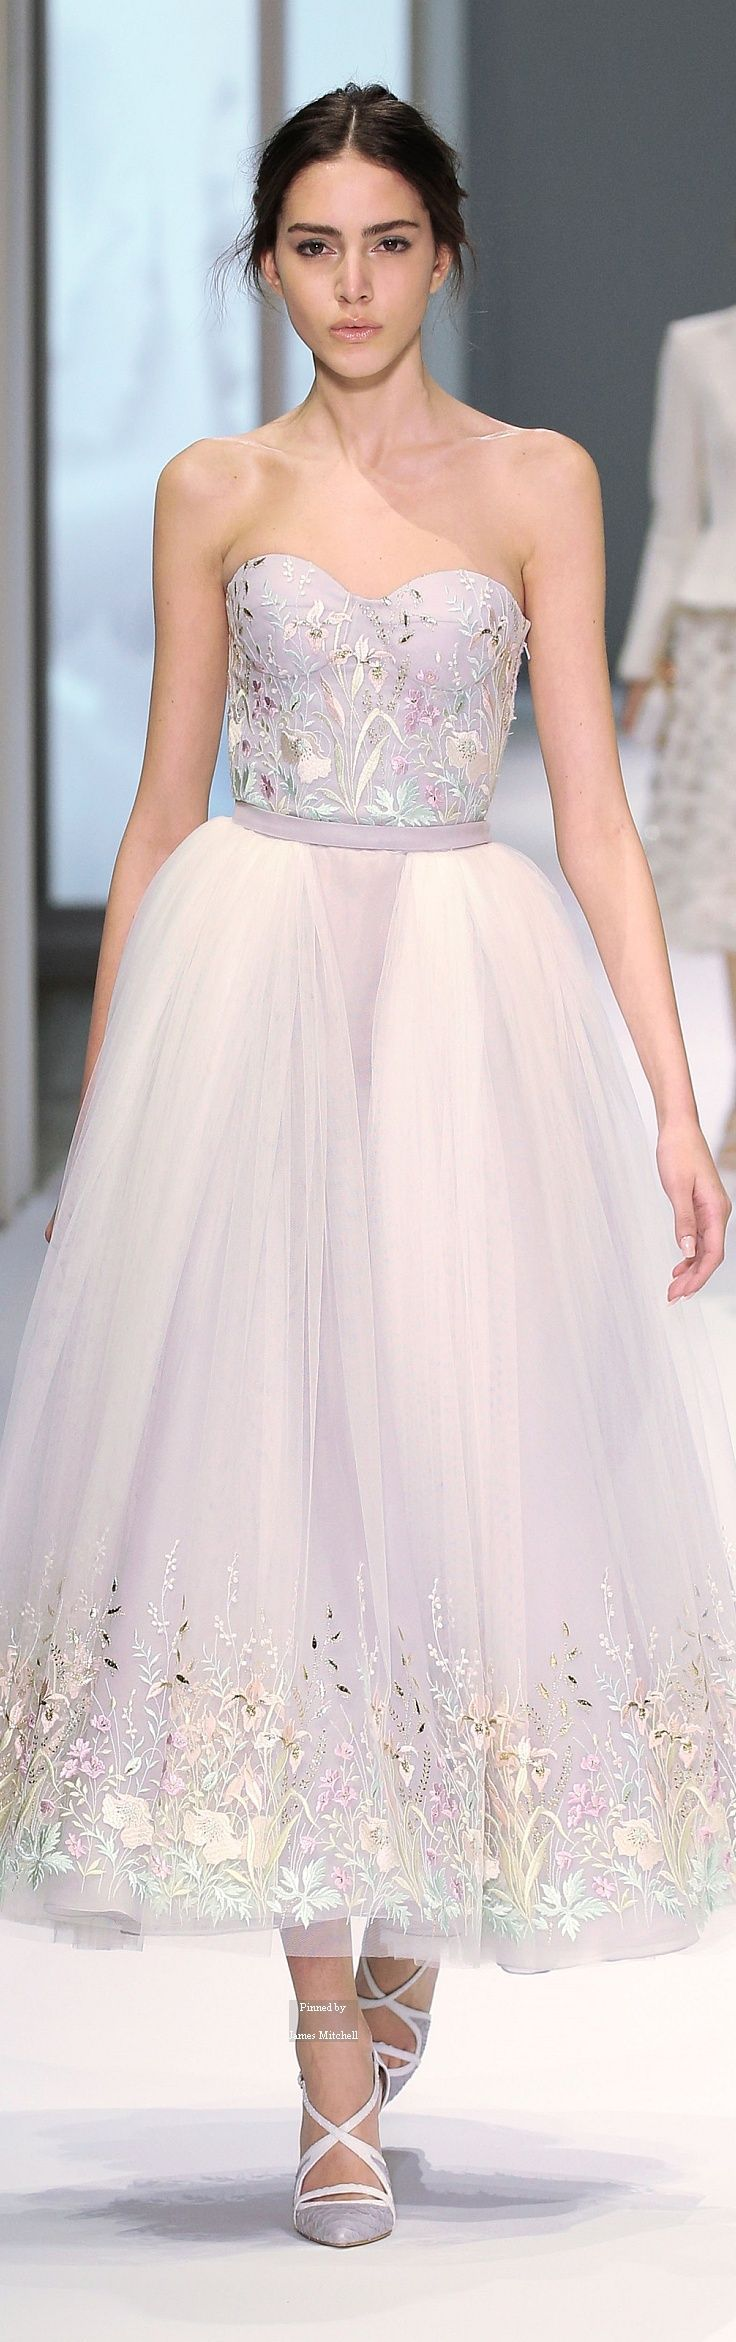 Ralph & Russo Haute Couture Spring Summer 2015 collection color and aplique